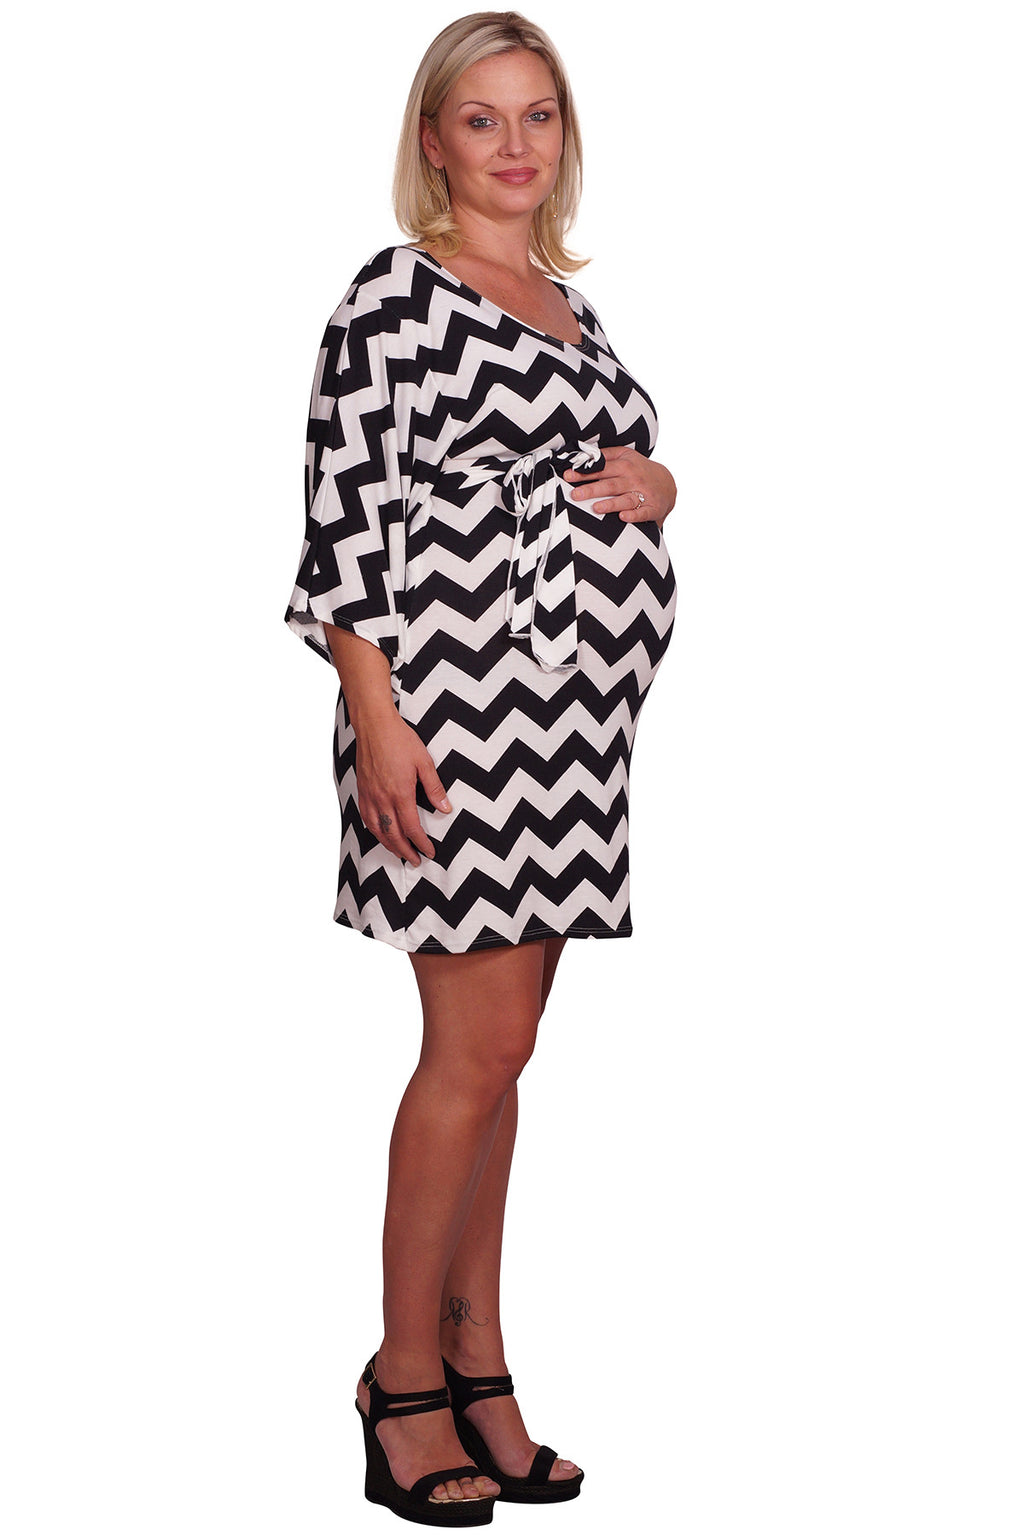 Black Belted Plus Maternity Dress - Mommylicious